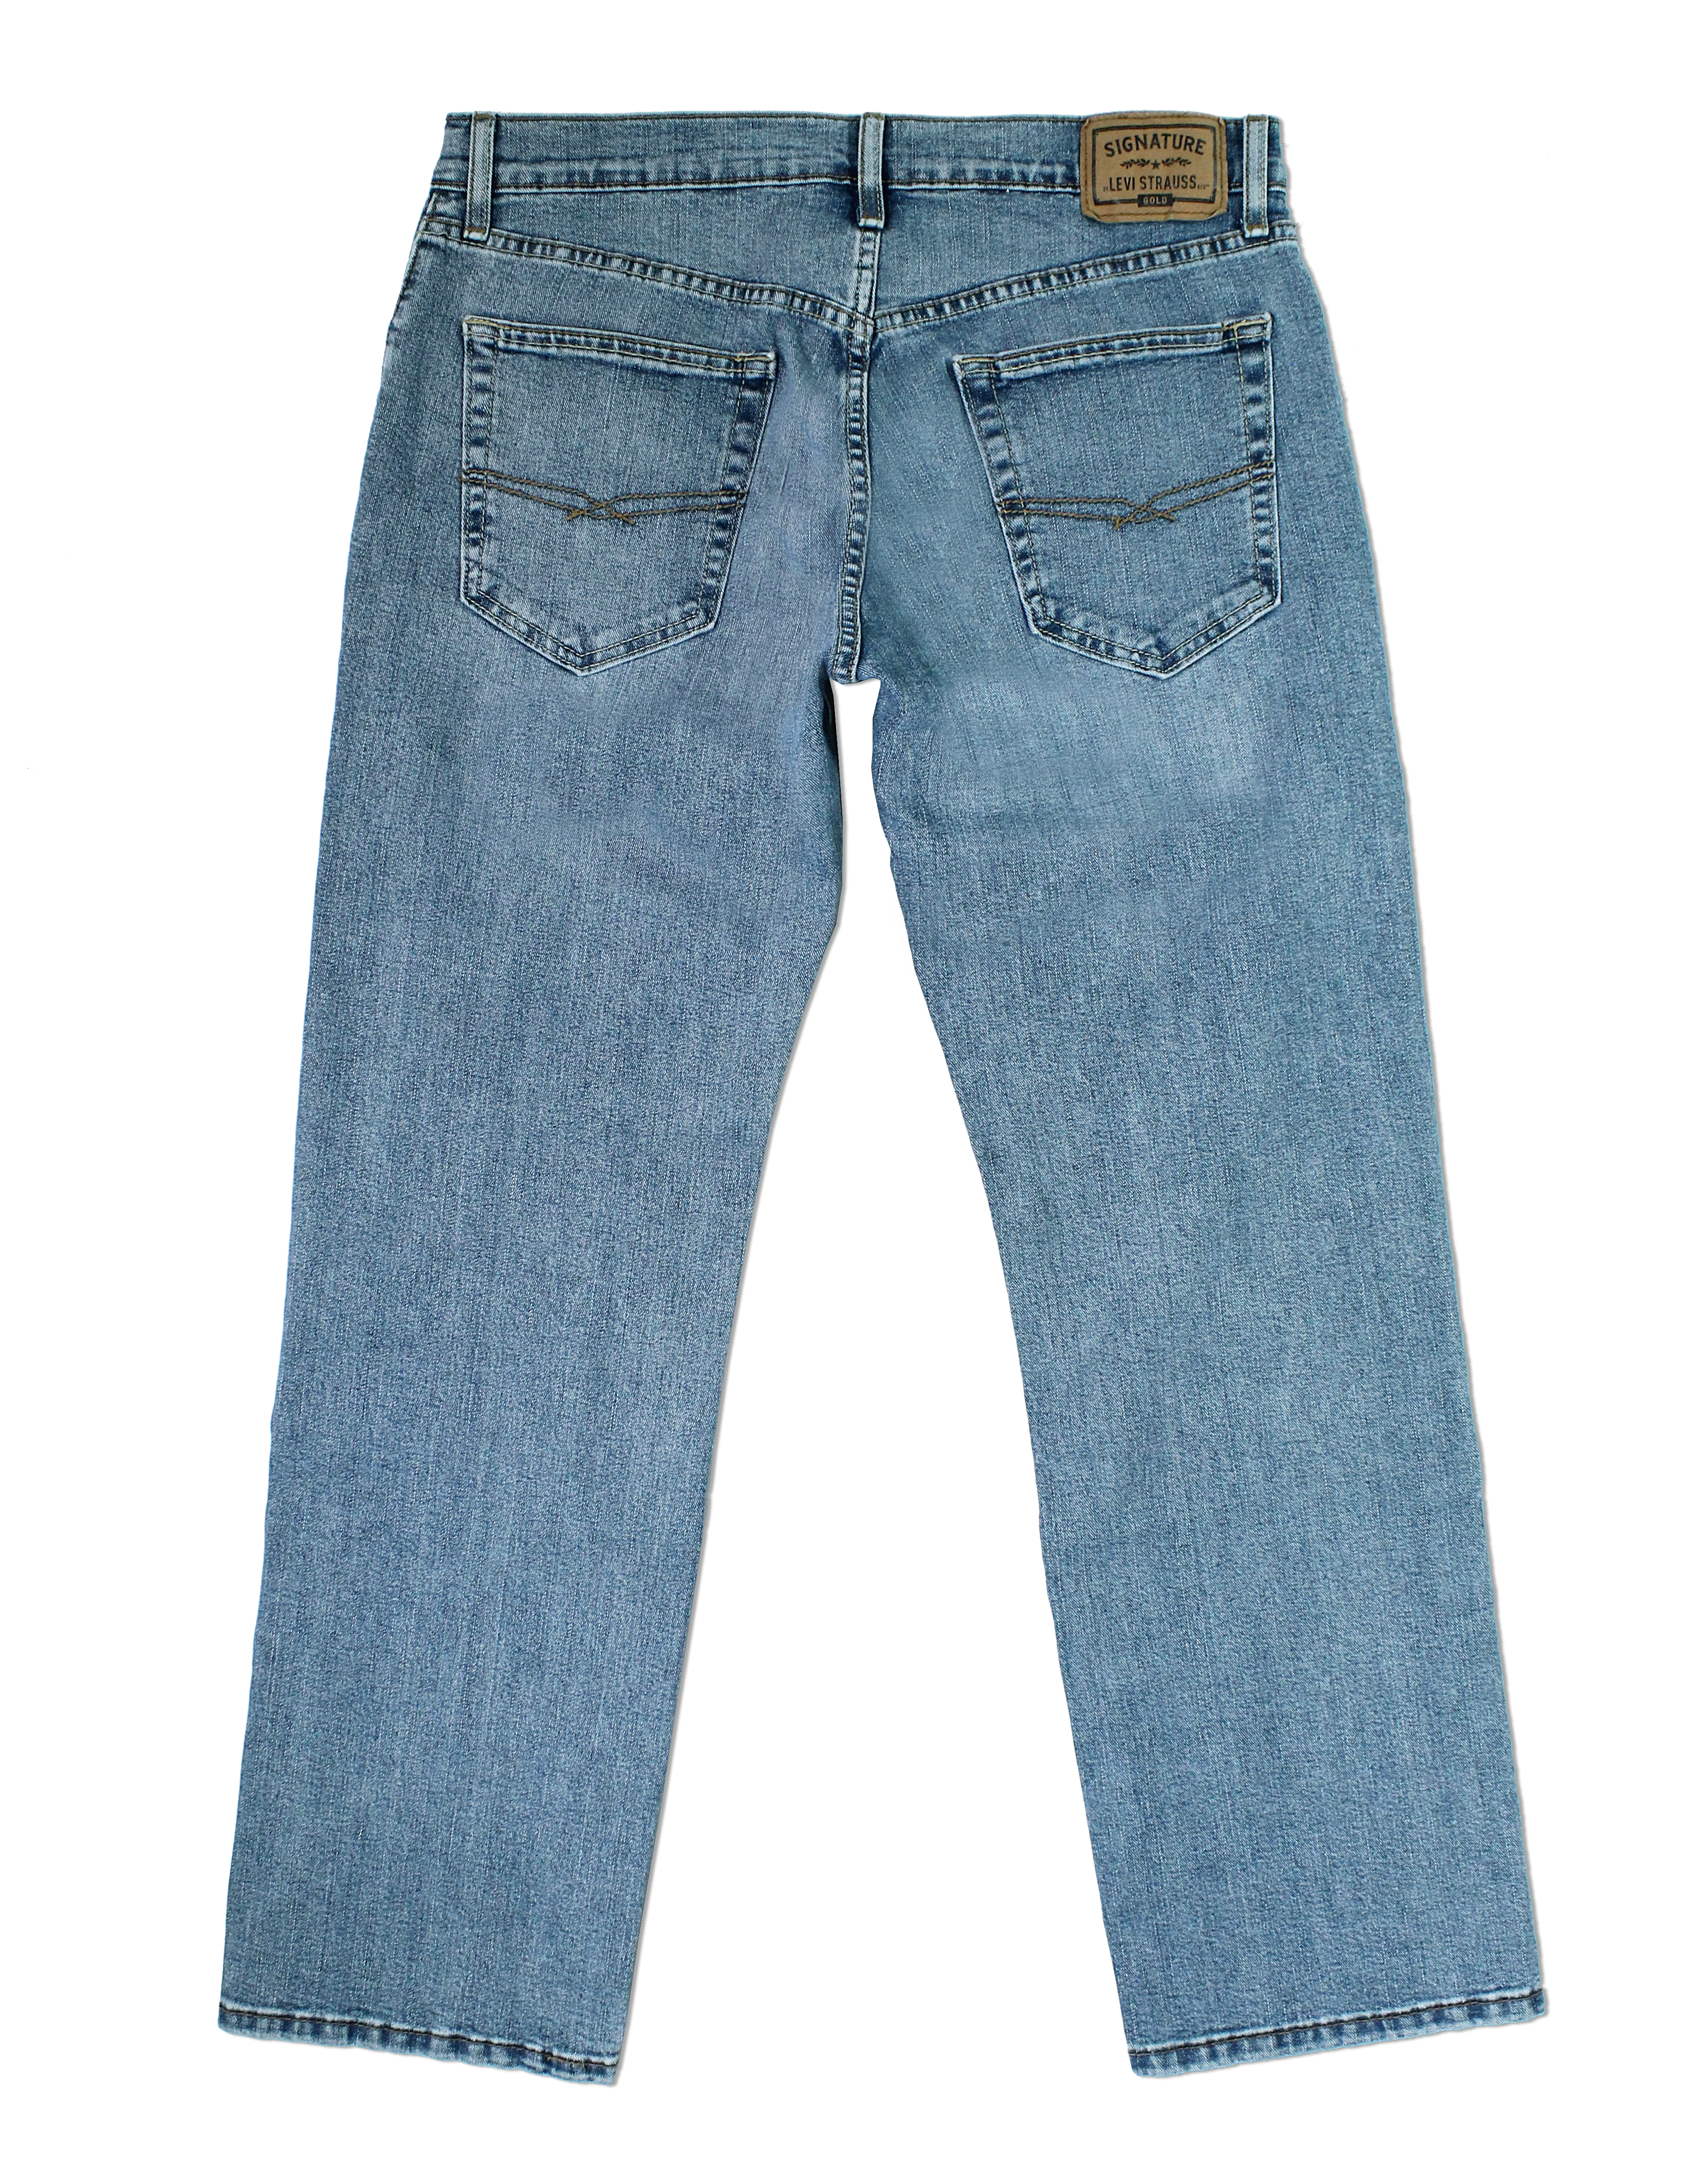 Levi-039-s-Jeans-Signature-Gold-by-Levi-Strauss-NEW-Titan-Blue-Men-Relaxed-Fit-Jeans thumbnail 4